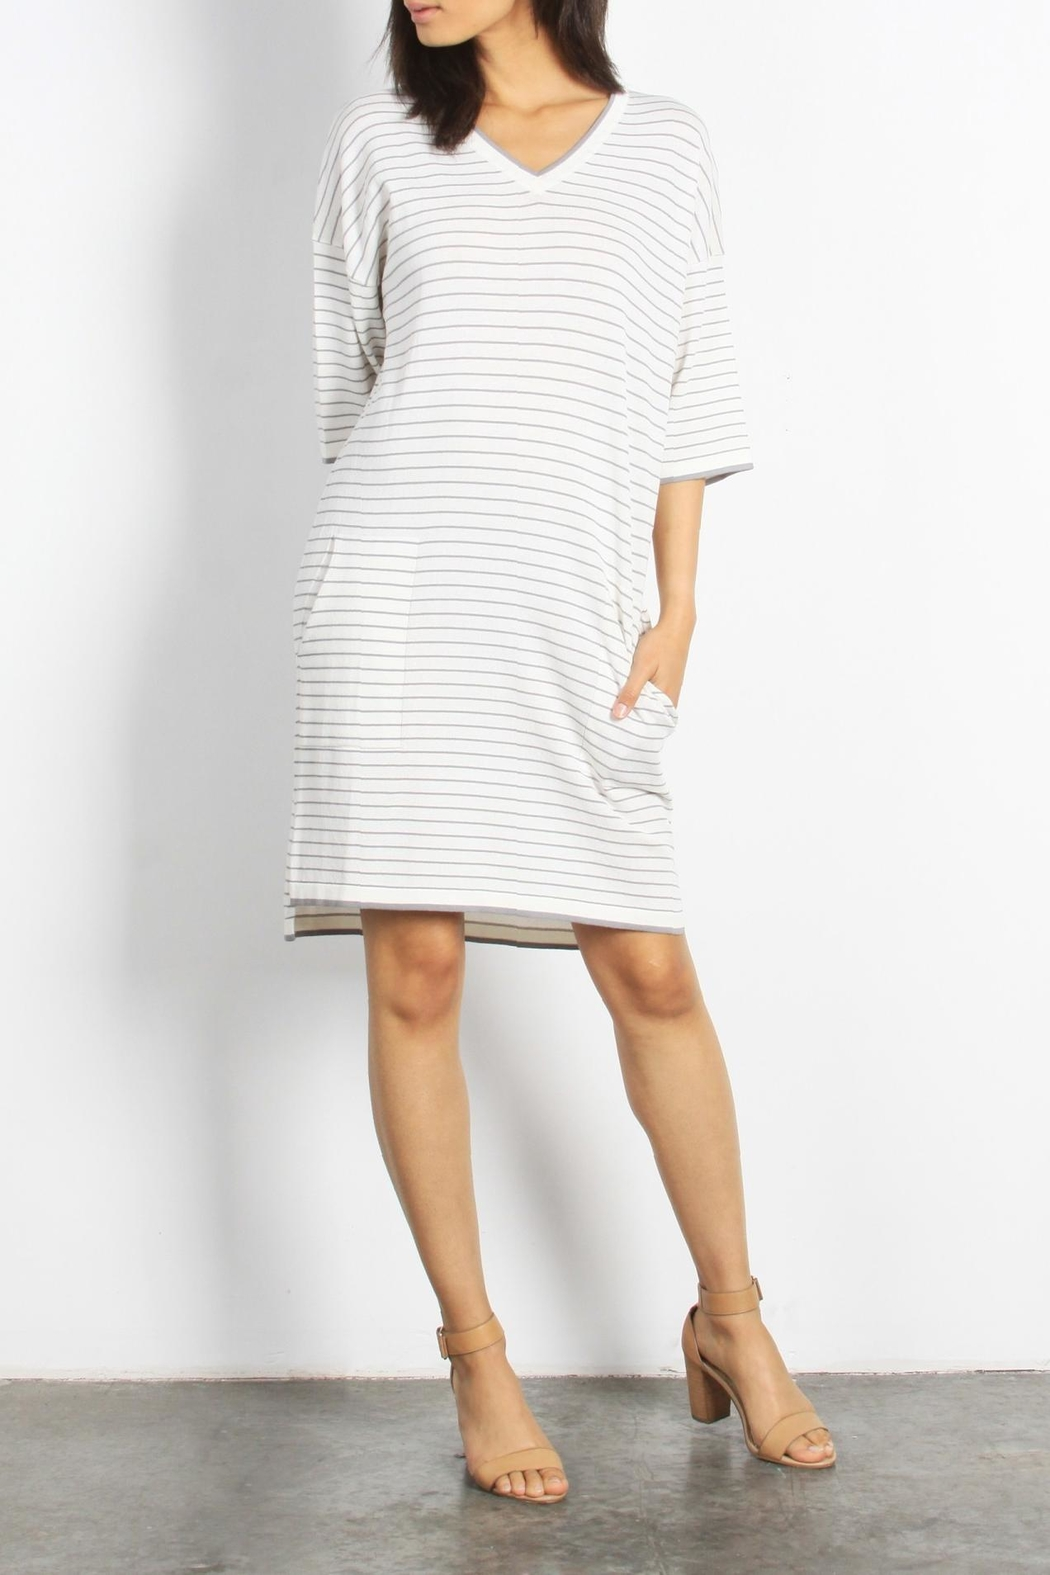 Mod Ref Channing Striped Dress - Main Image